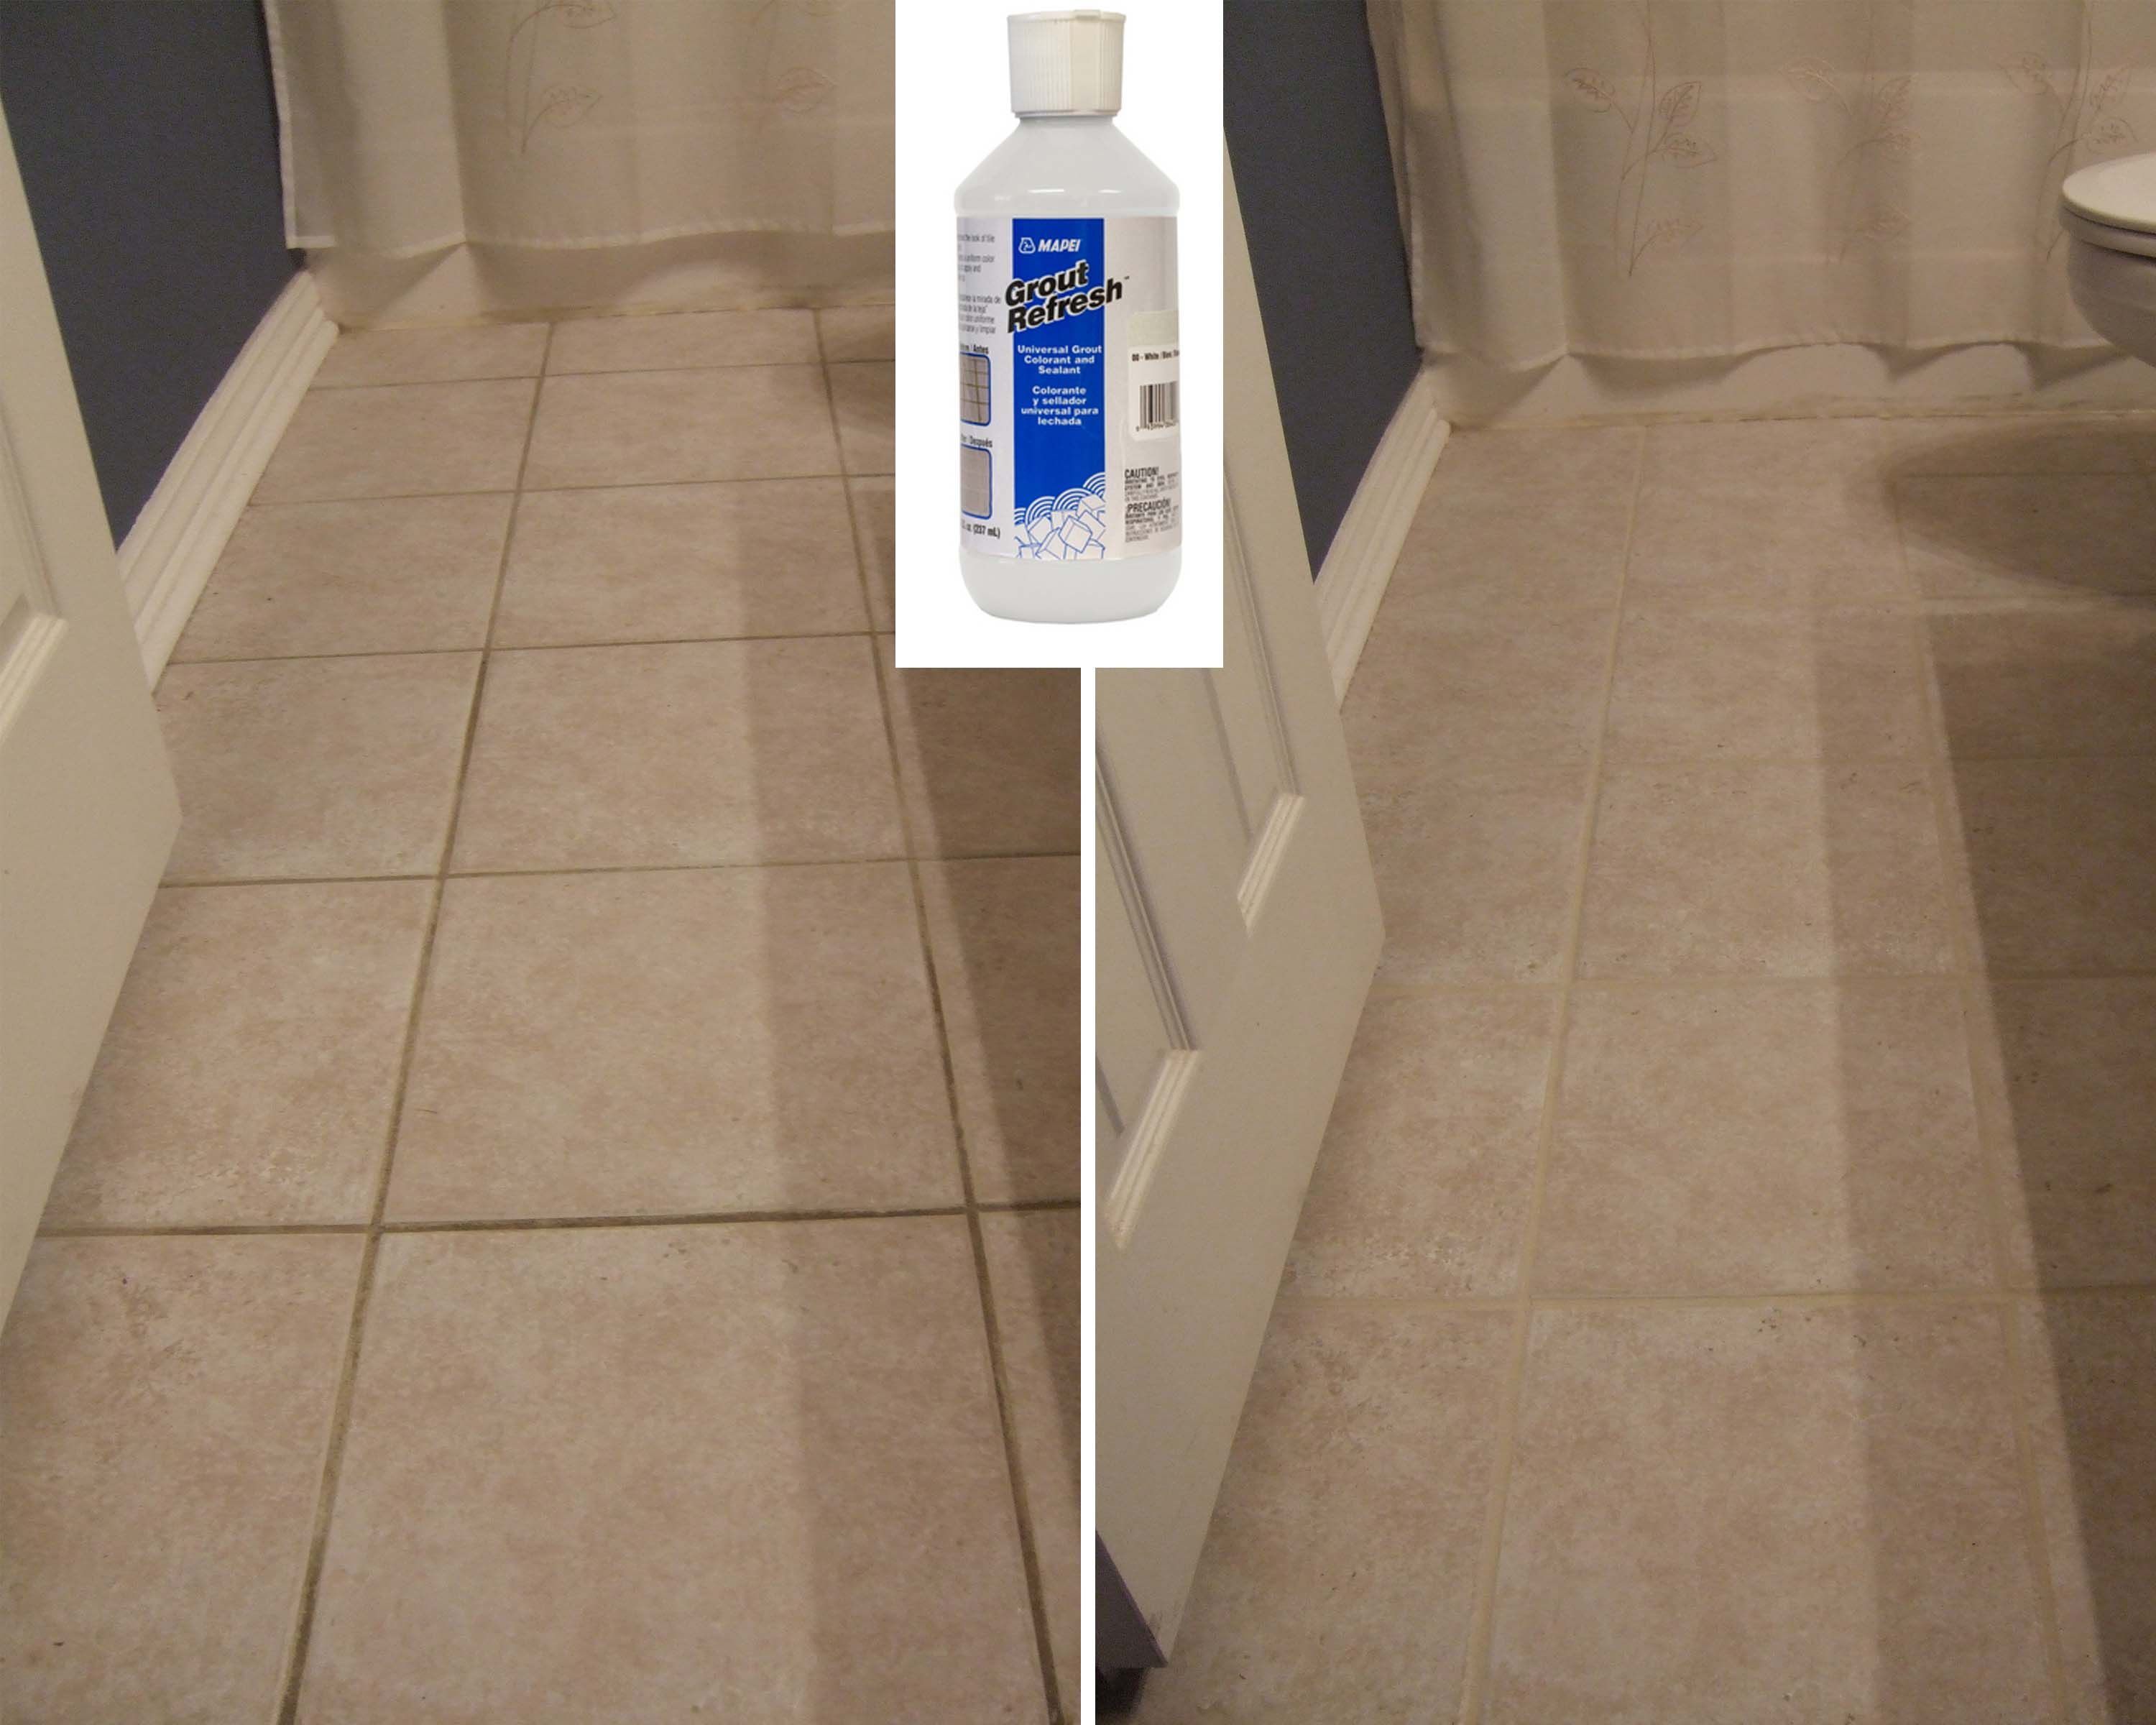 How to Clean Grout With Peroxide Baking Soda Grout Clean